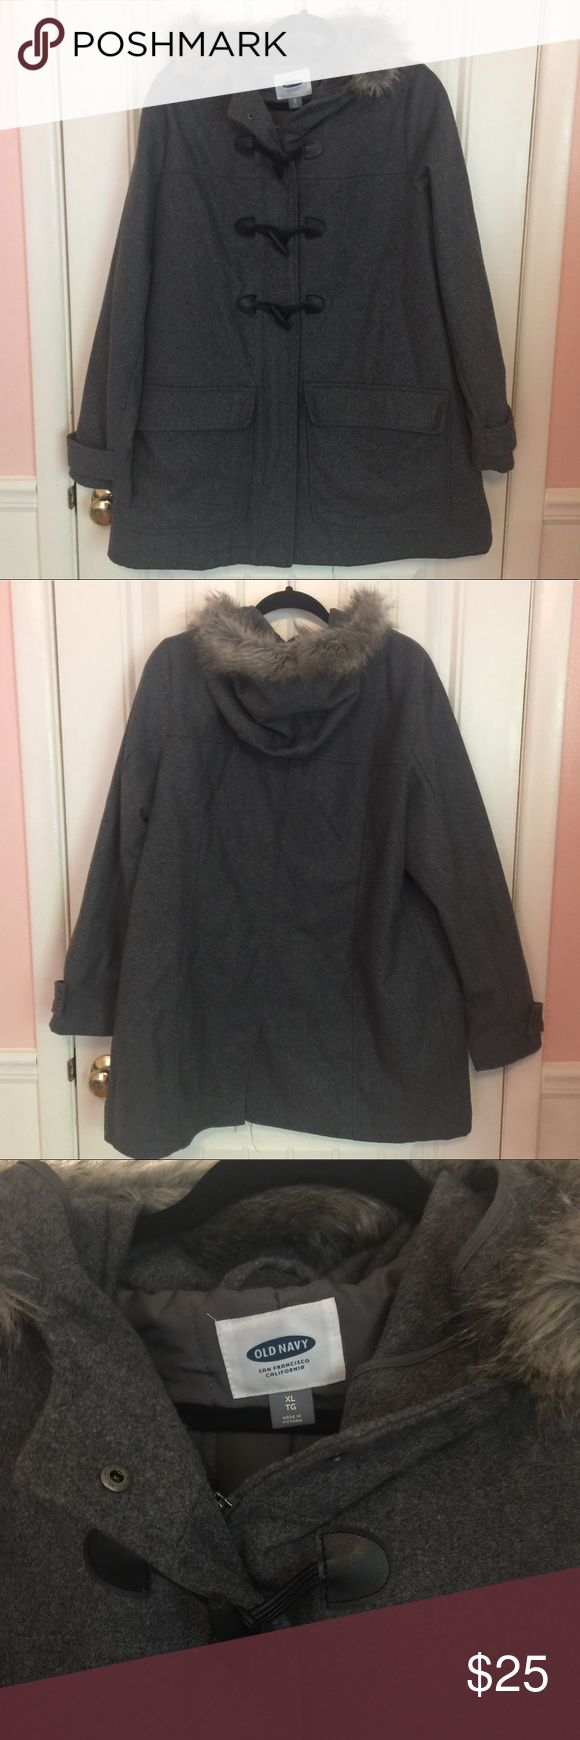 Old Navy Gray Toggle Coat with Fur Hood Old Navy gray wool winter coat with faux fur lined hood, full zip front, black faux leather toggle detail, and cuff detail. Great condition from a smoke-free home. Offers accepted and encouraged! Old Navy Jackets & Coats Pea Coats